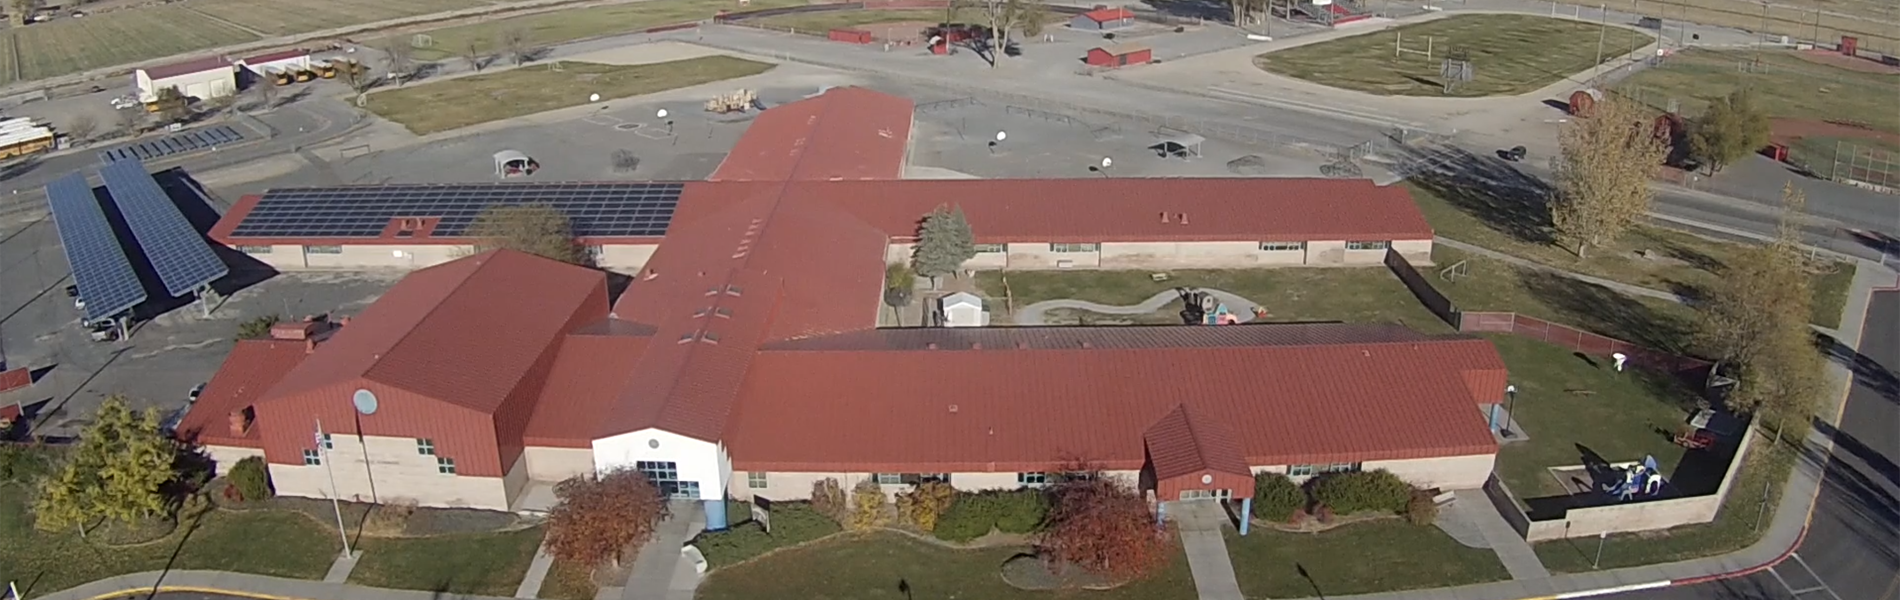 Aerial Photo of Lovelock Elementary School